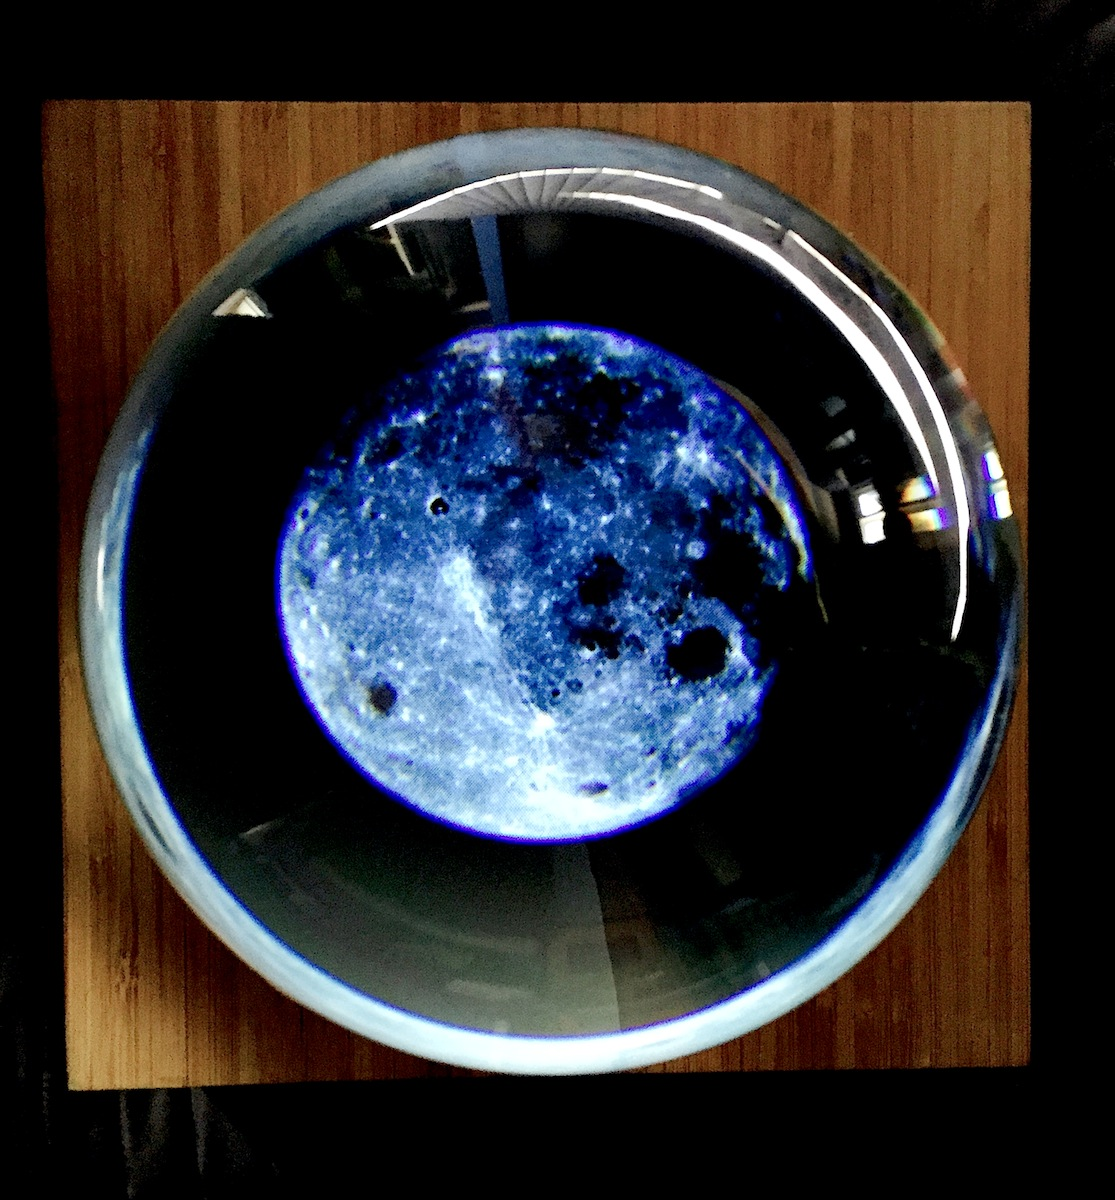 JD Beltran, Untitled (Crystal Ball), 2014, video sculpture (custom lens, video, base), 12 x 12 x 12 inches